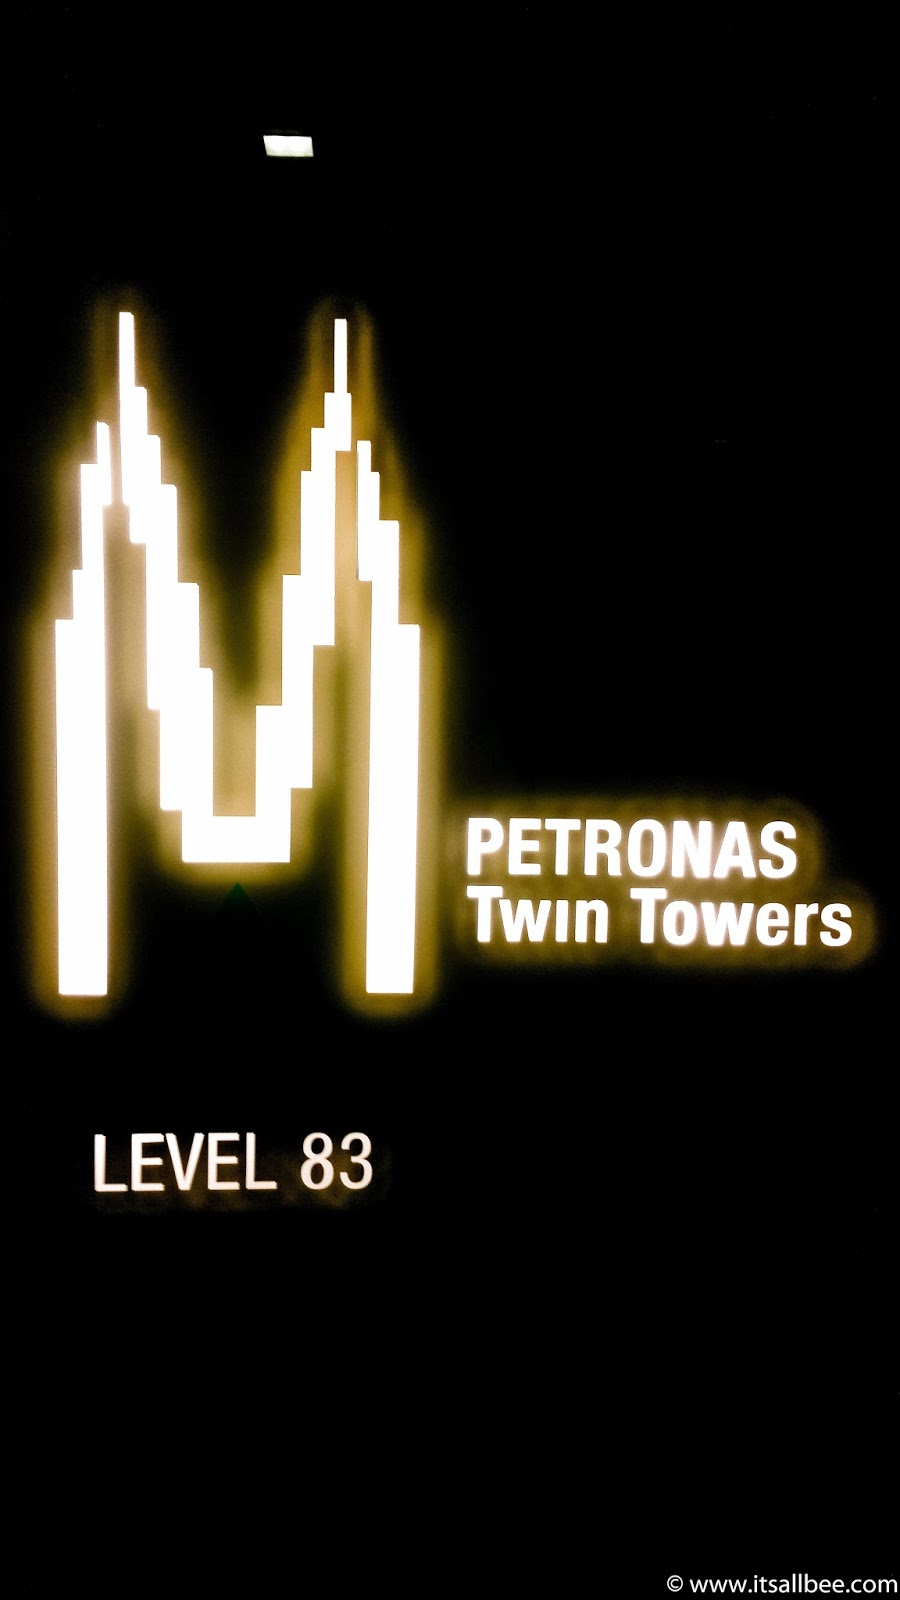 where is petronas tower - how many floors in petronas tower